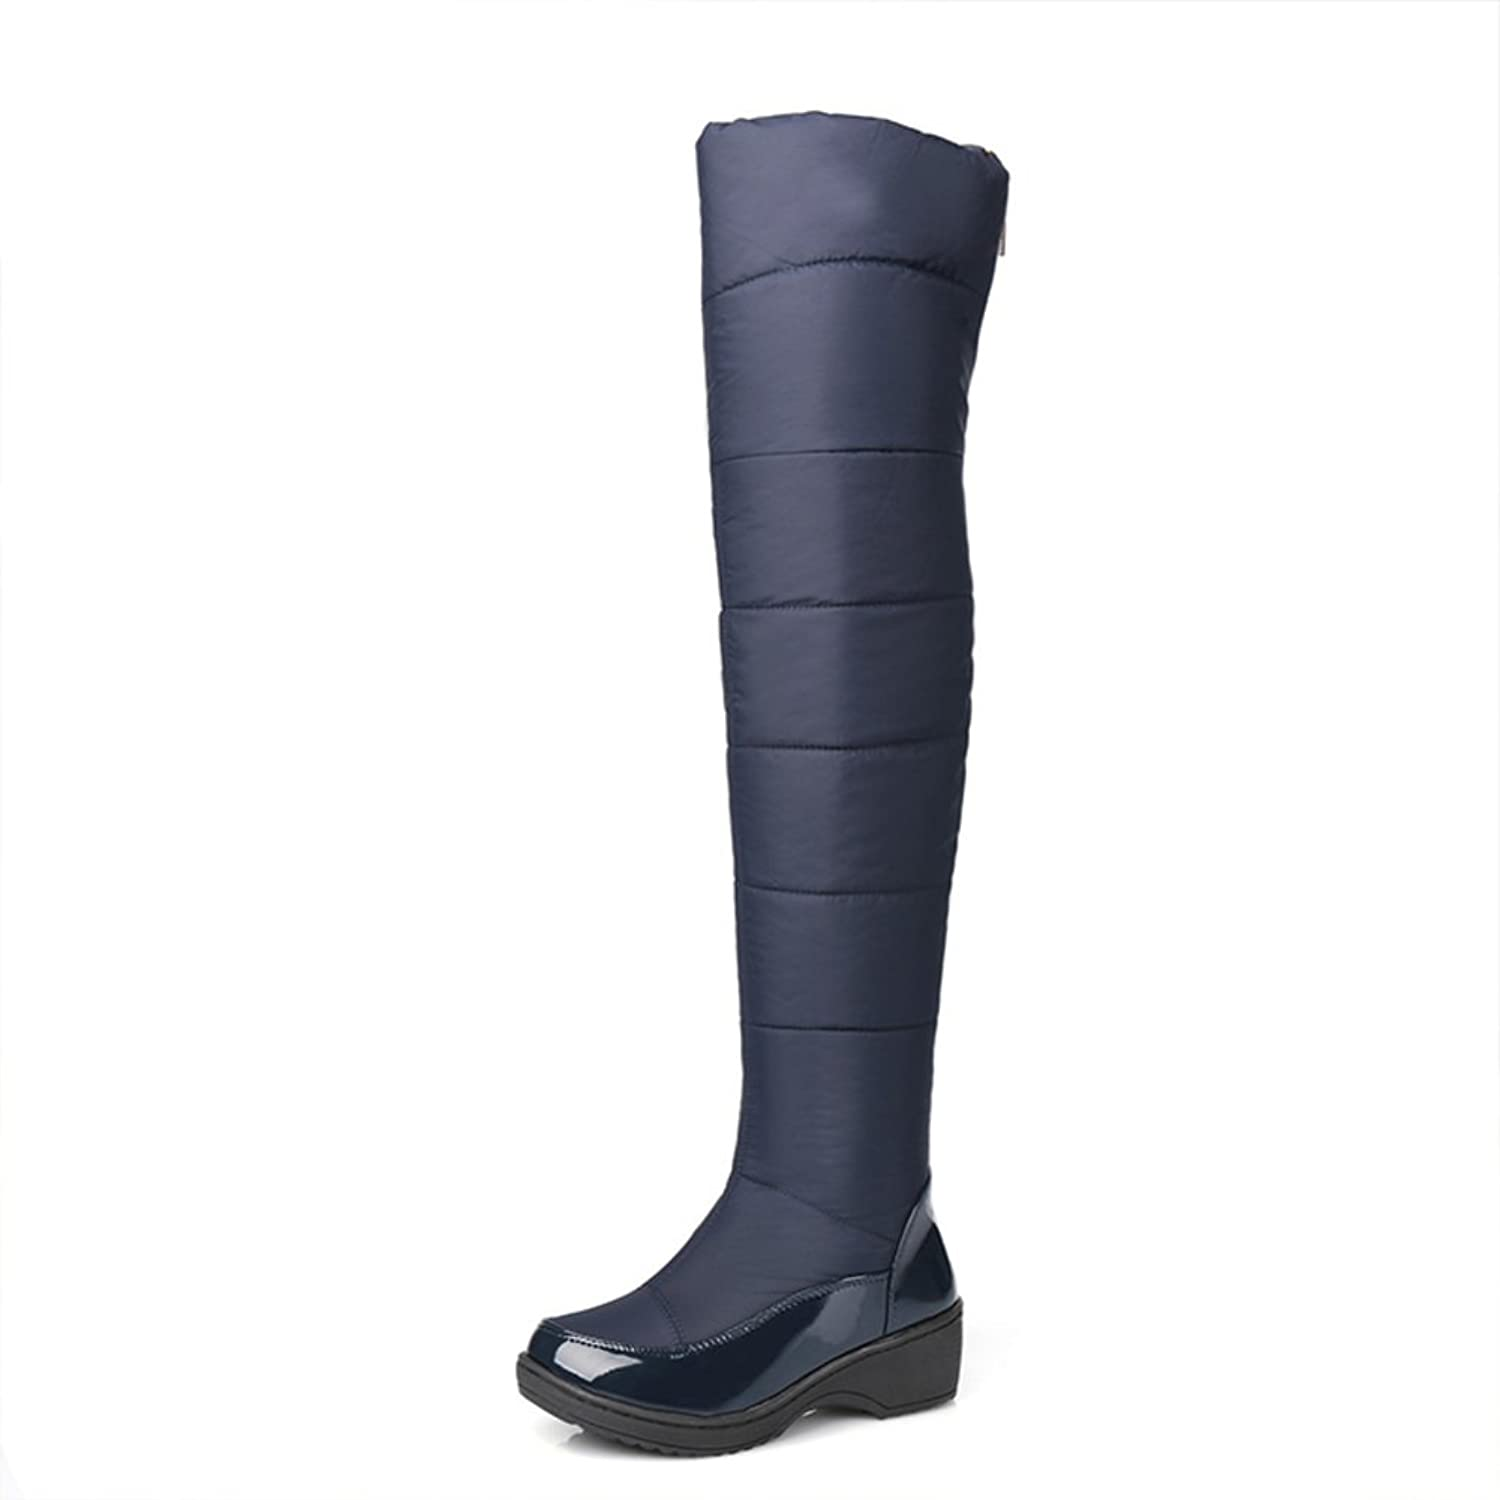 RHFDVGDS Fashion over the knee boots Thick warm down winter boots in winter wind and Lady boots